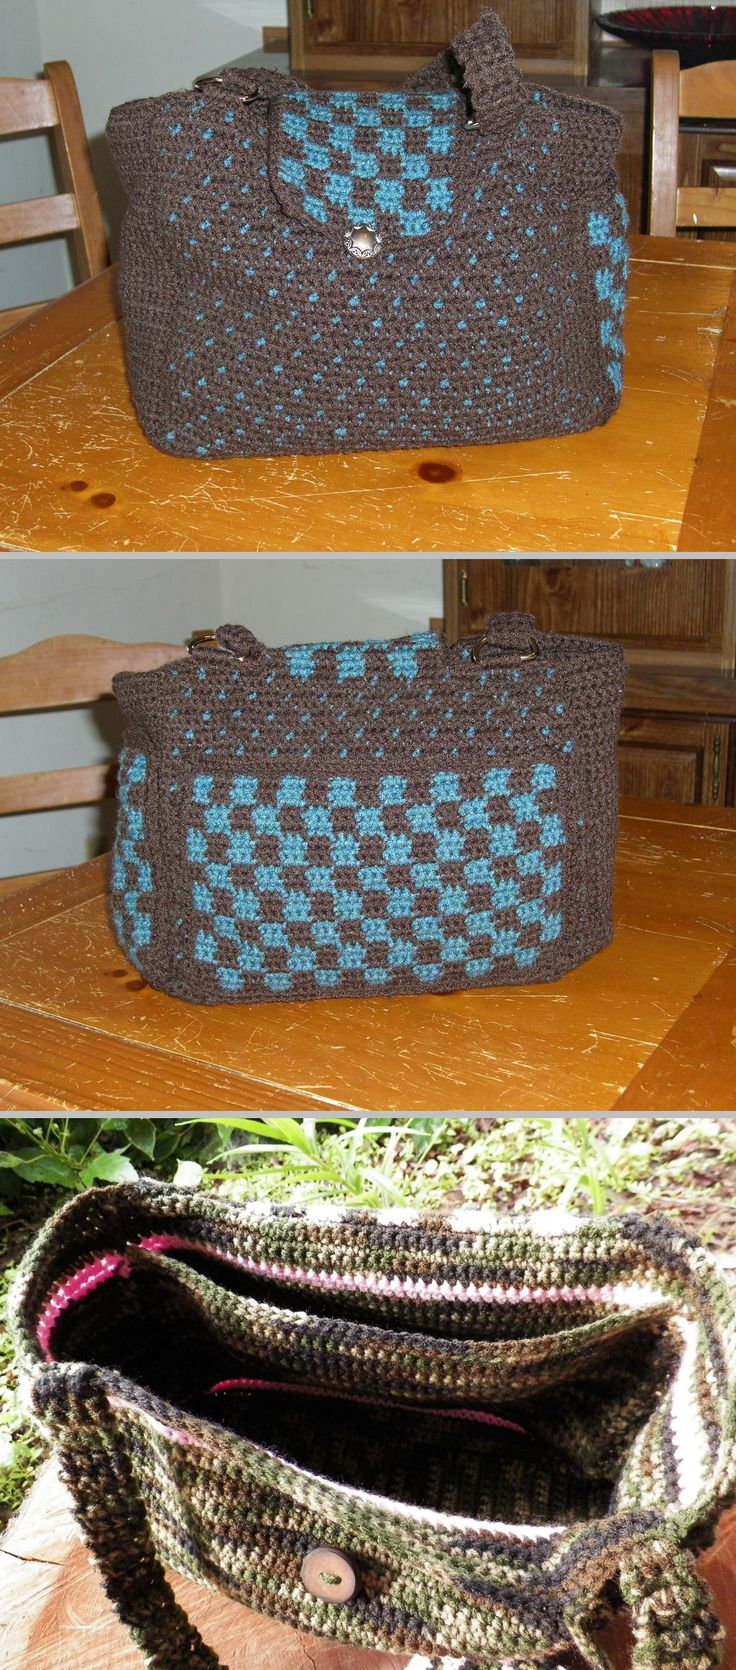 "Everyday Tote, free pattern from Red Heart. Measures 10"" x 12"", has two outside pockets. Could add an inside pocket too (bottom pic). Takes 4 skeins RHSS, hook size 'G'. Pics from Ravelry Project Gallery. . . . . ღTrish W ~ http://www.pinterest.com/trishw/ . . . . #crochet #purse #tote"